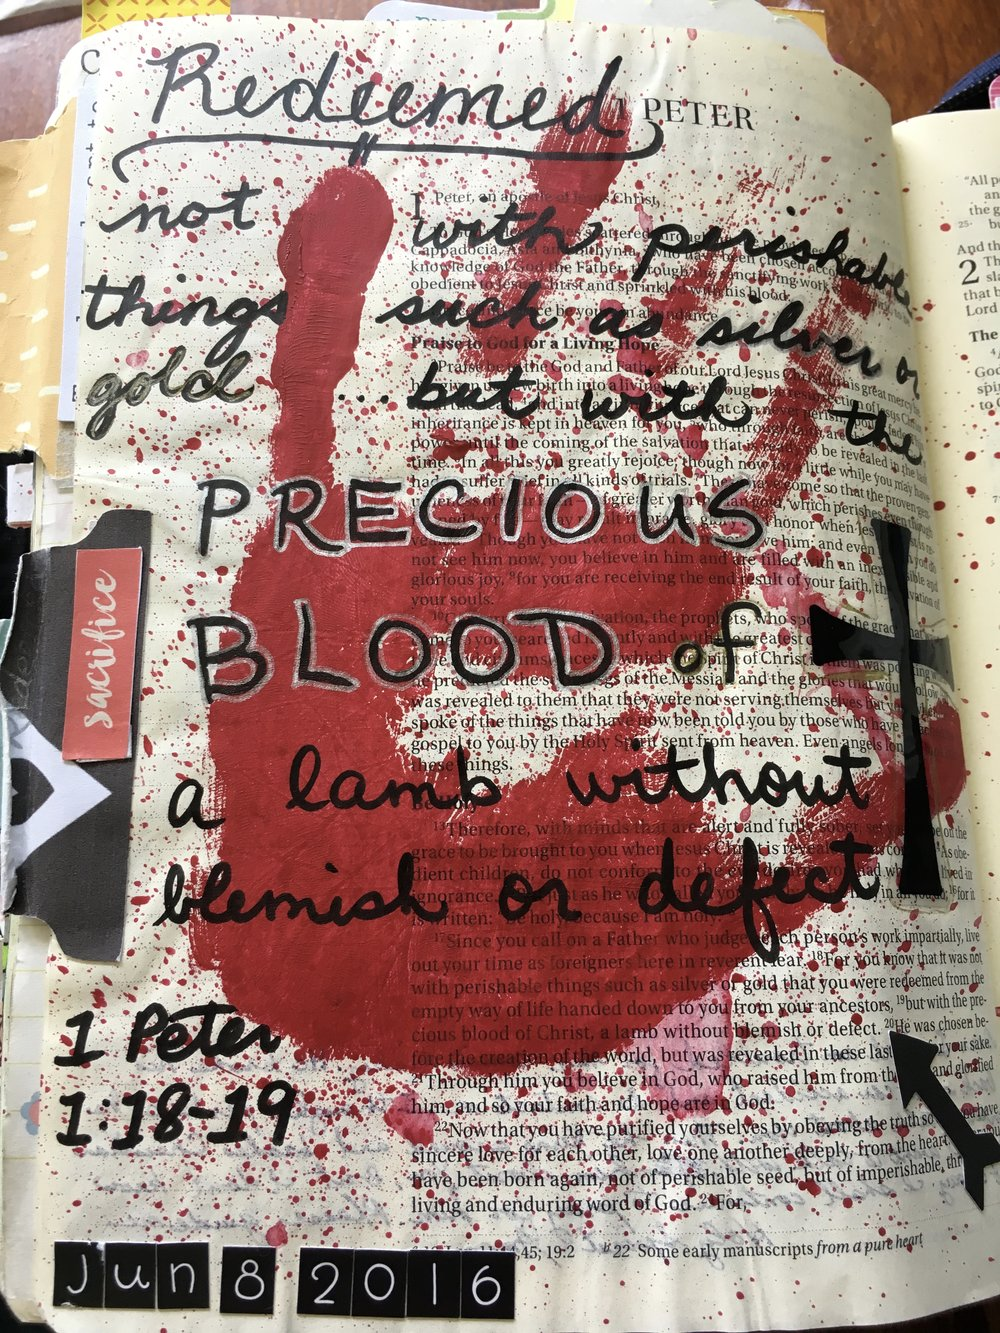 Sierra Burden 1 Peter 1:18-19  I was surprised at how emotional I got while painting my hand to do this page.  It took more red acrylic paint than I imagined, which reminded me how much Christ really sacrificed in His own blood to redeem us all.